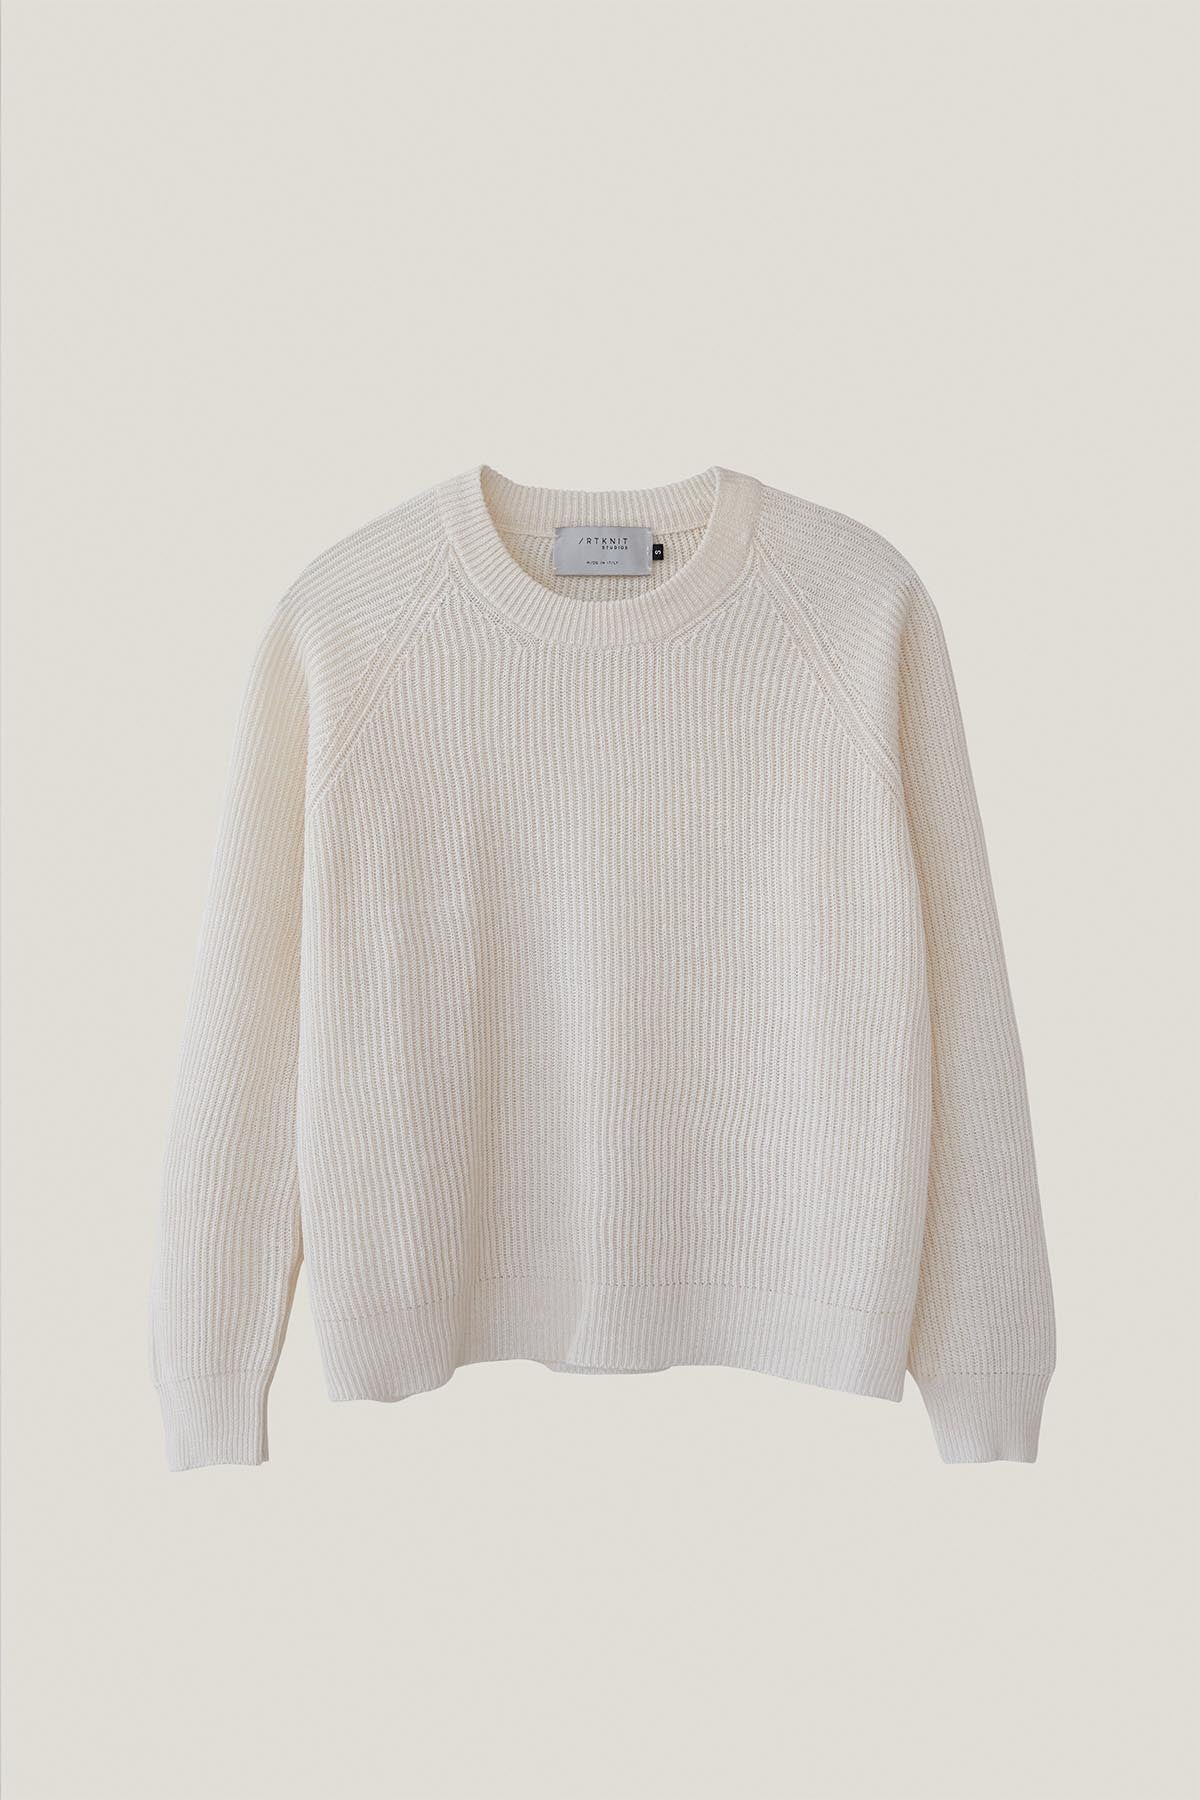 The Linen Cotton Crew-Neck Sweater - Ivory